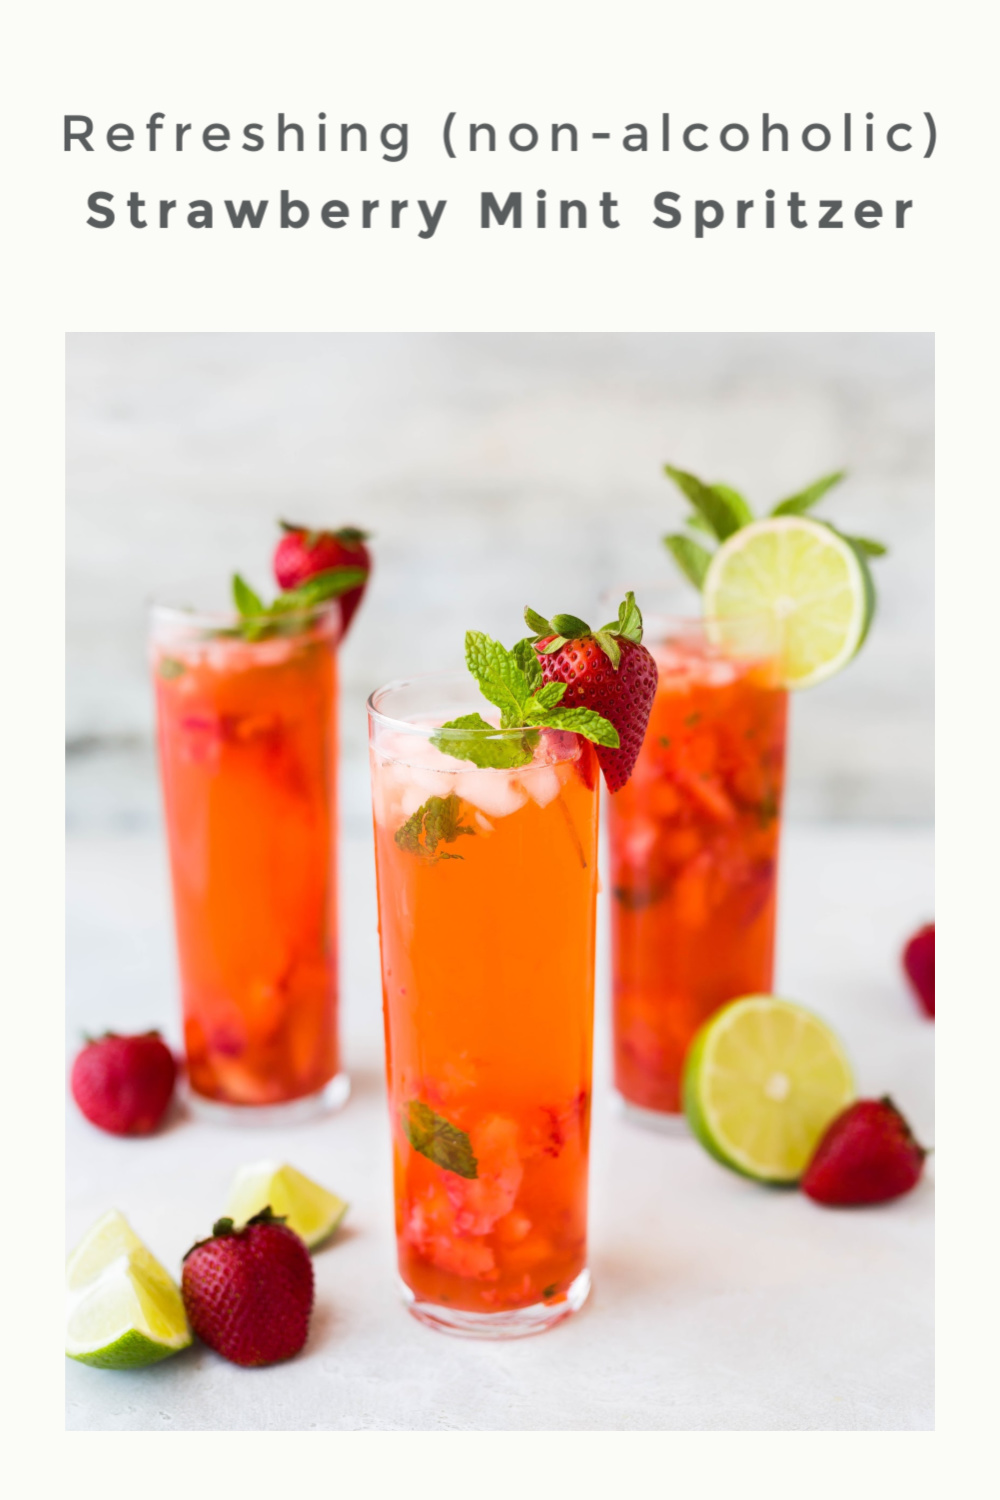 Refreshing Strawberry Mint Spritzer (non-alcoholic)